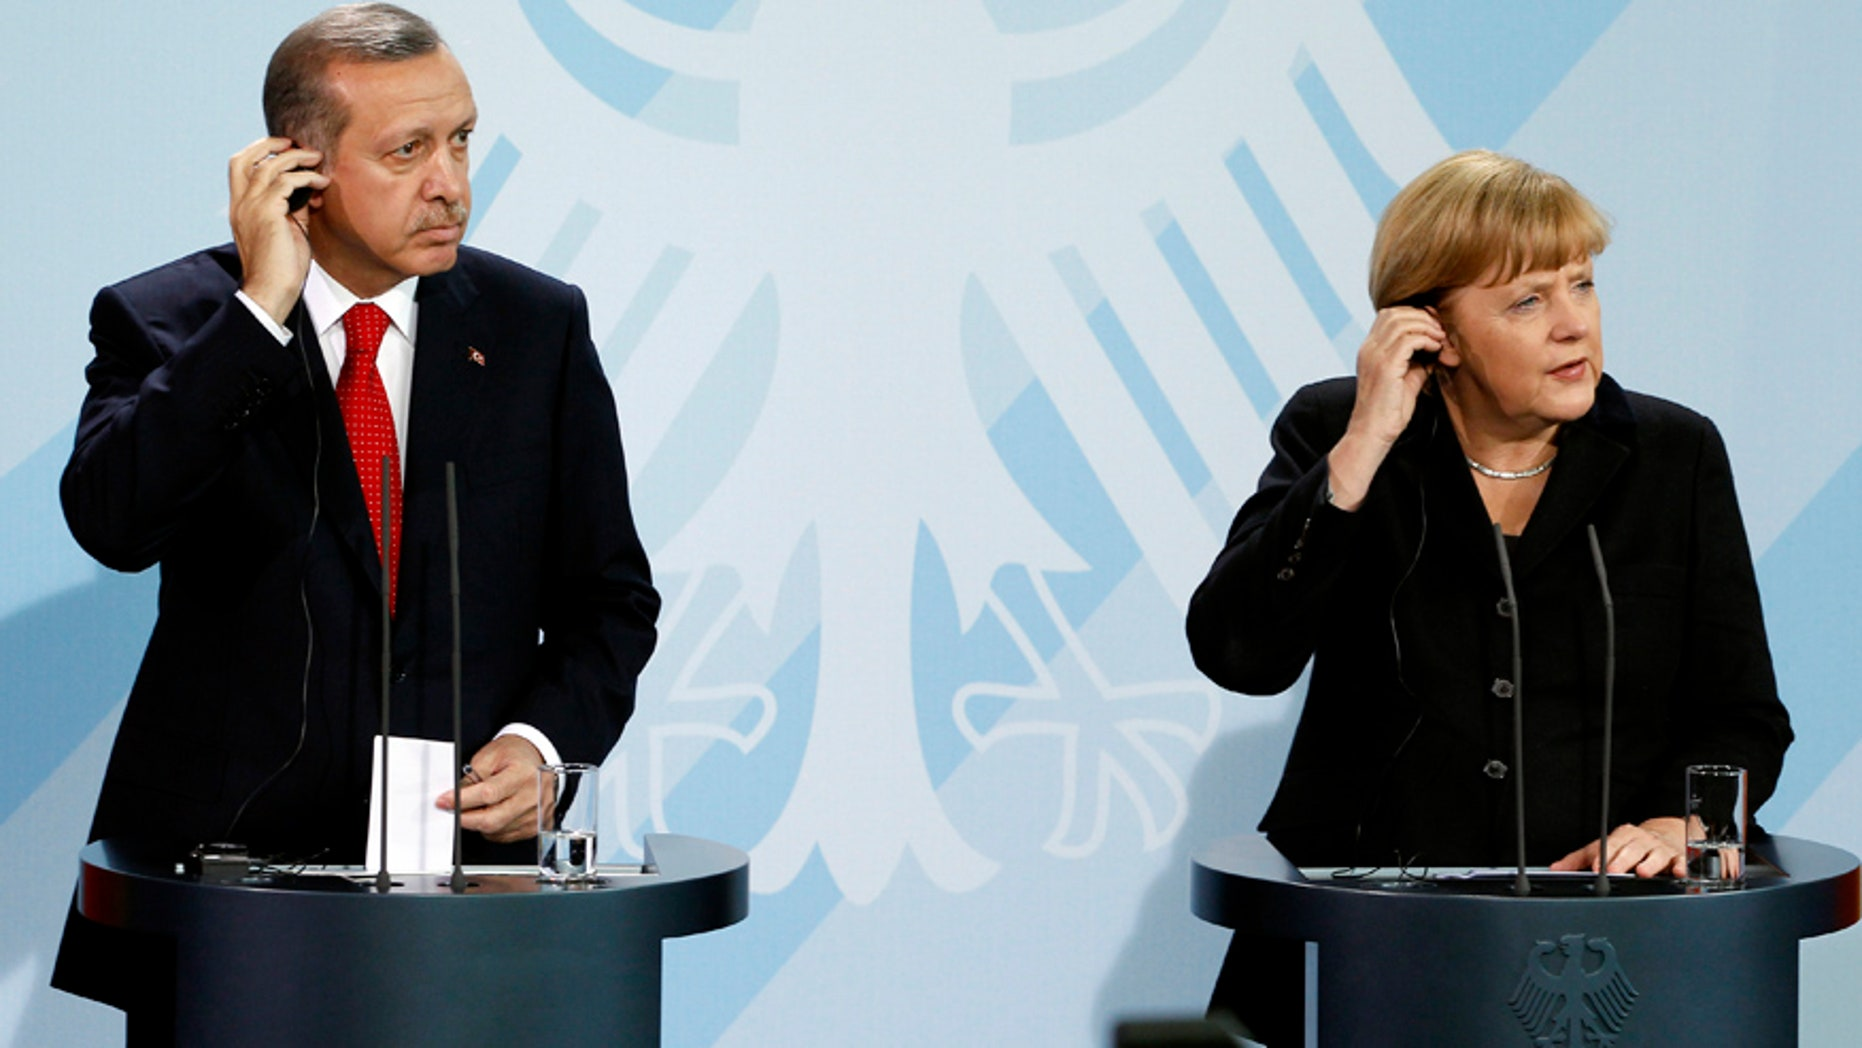 Oct. 31, 2012: German Chancellor Angela Merkel, right, and Turkey's  President Recep Tayyip Erdogan, left, address the media during a joint press conference after a meeting at the chancellery in Berlin, Germany.